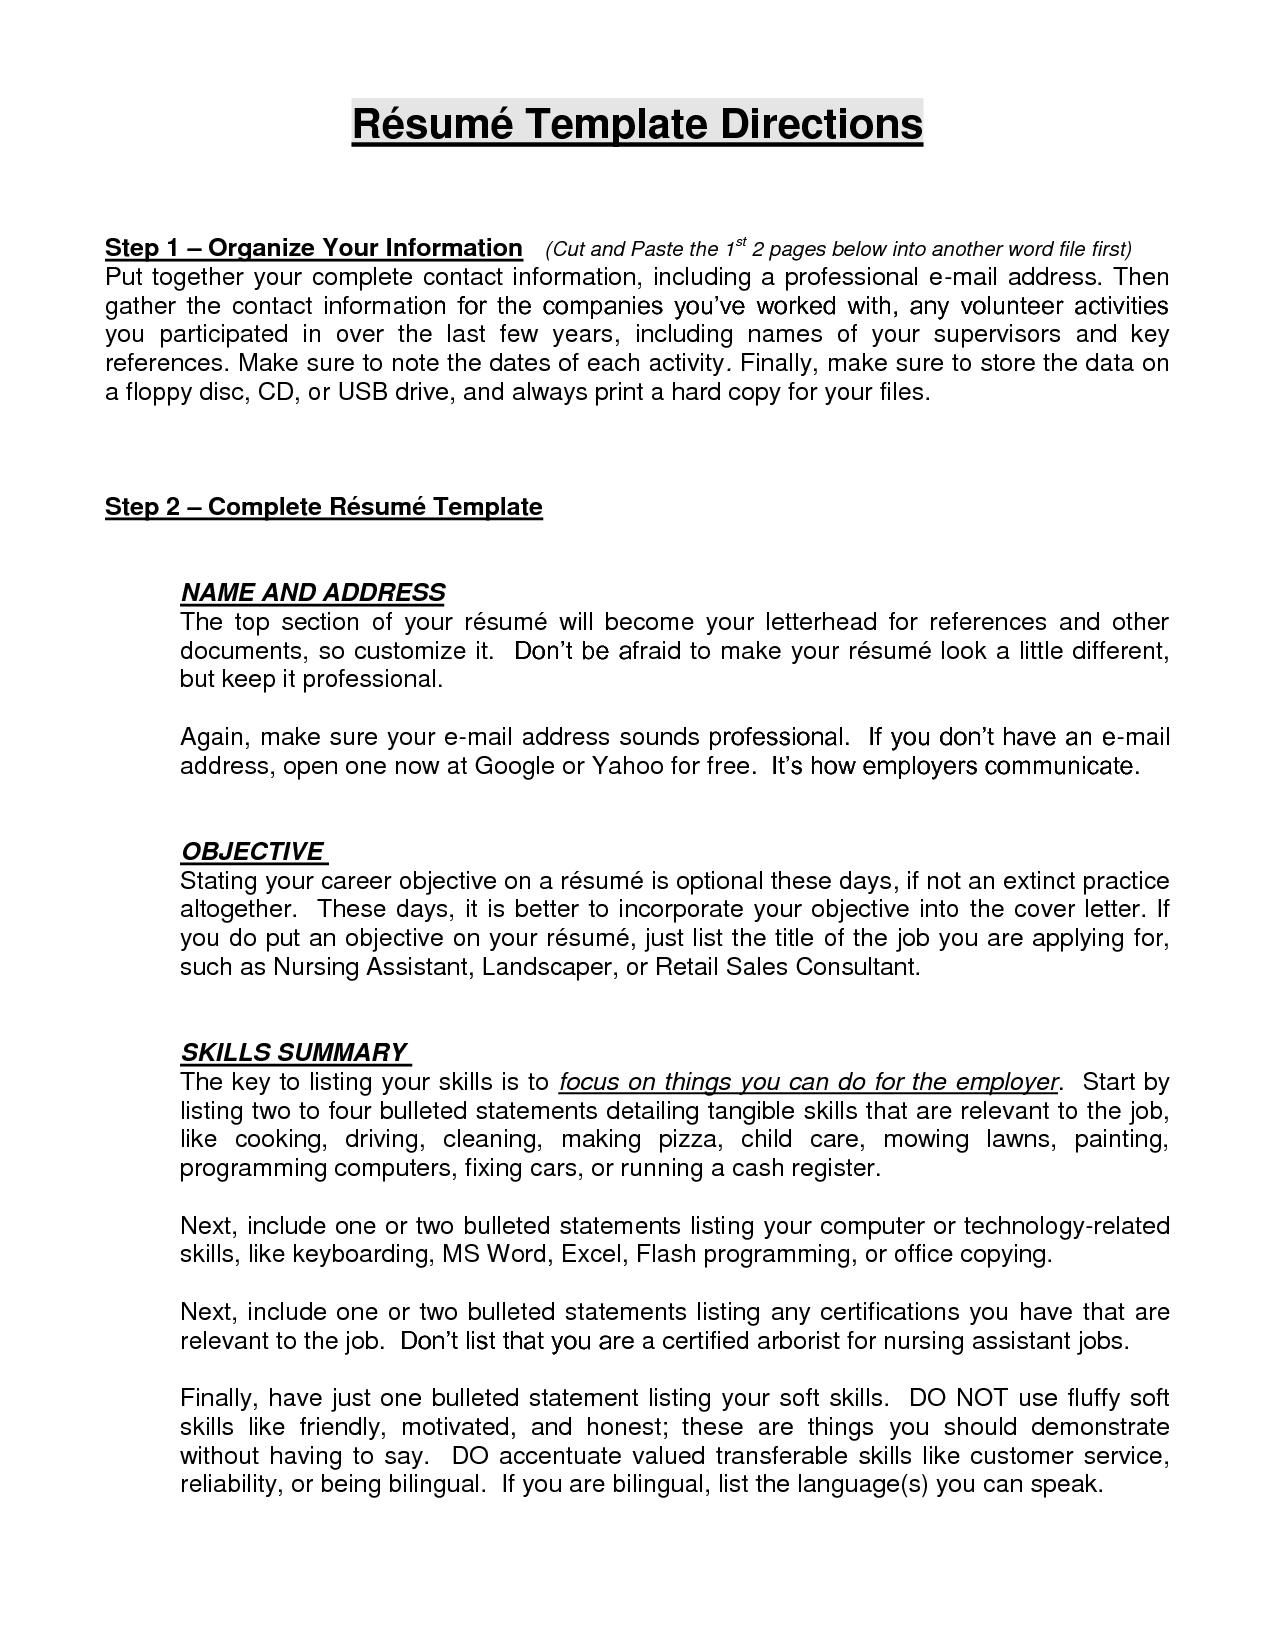 Ideas For Objectives On Resumes Resume Objective Statements Ideas Http Jobresume